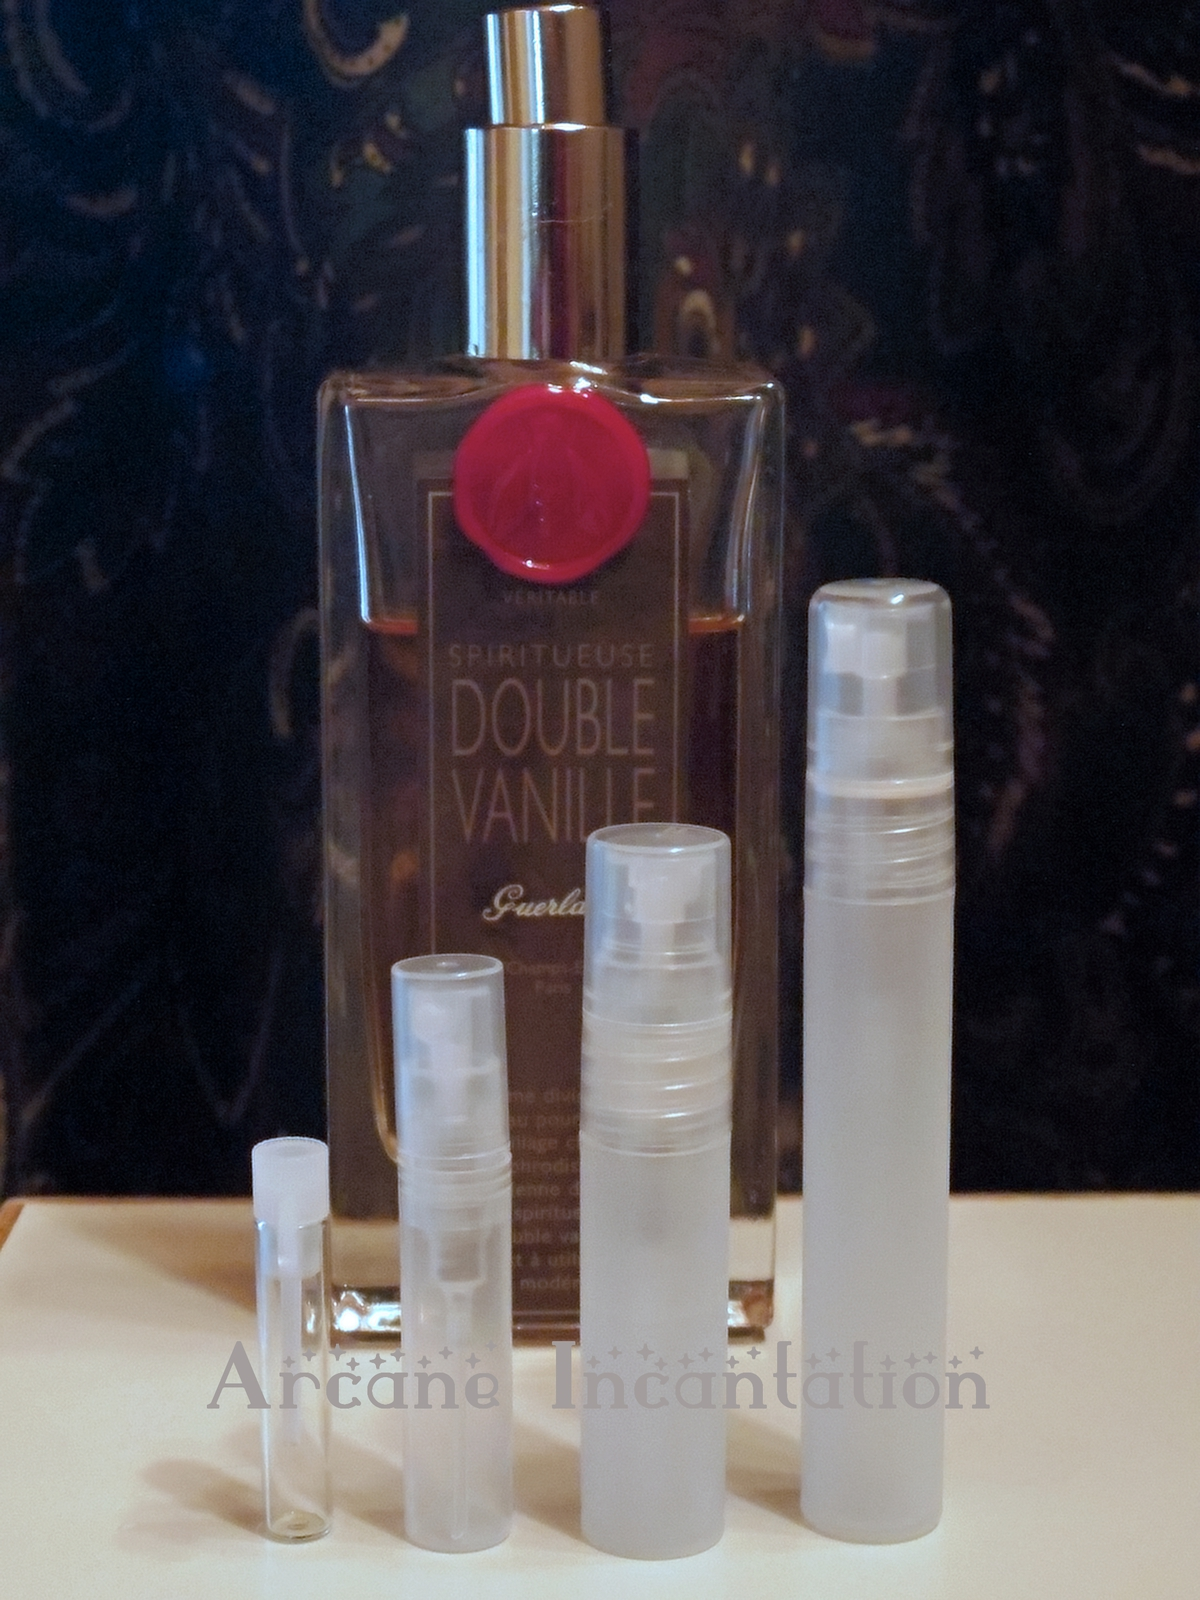 Image 0 of Guerlain Spiritueuse Double Vanille Eau de Parfum Decant Samples